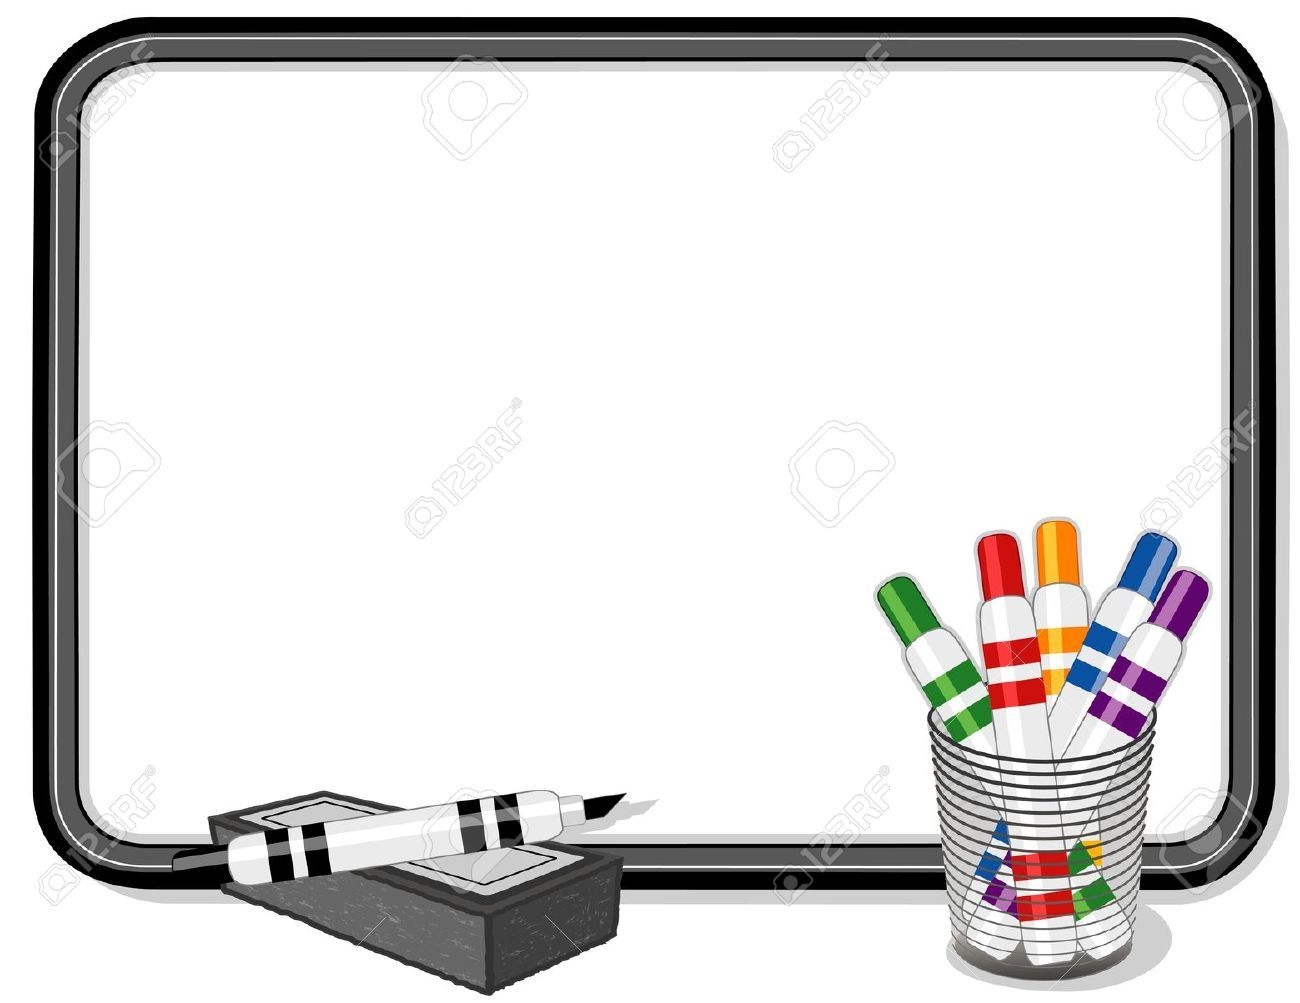 whiteboard with multicolor marker pens royalty free cliparts vectors and stock illustration. Black Bedroom Furniture Sets. Home Design Ideas